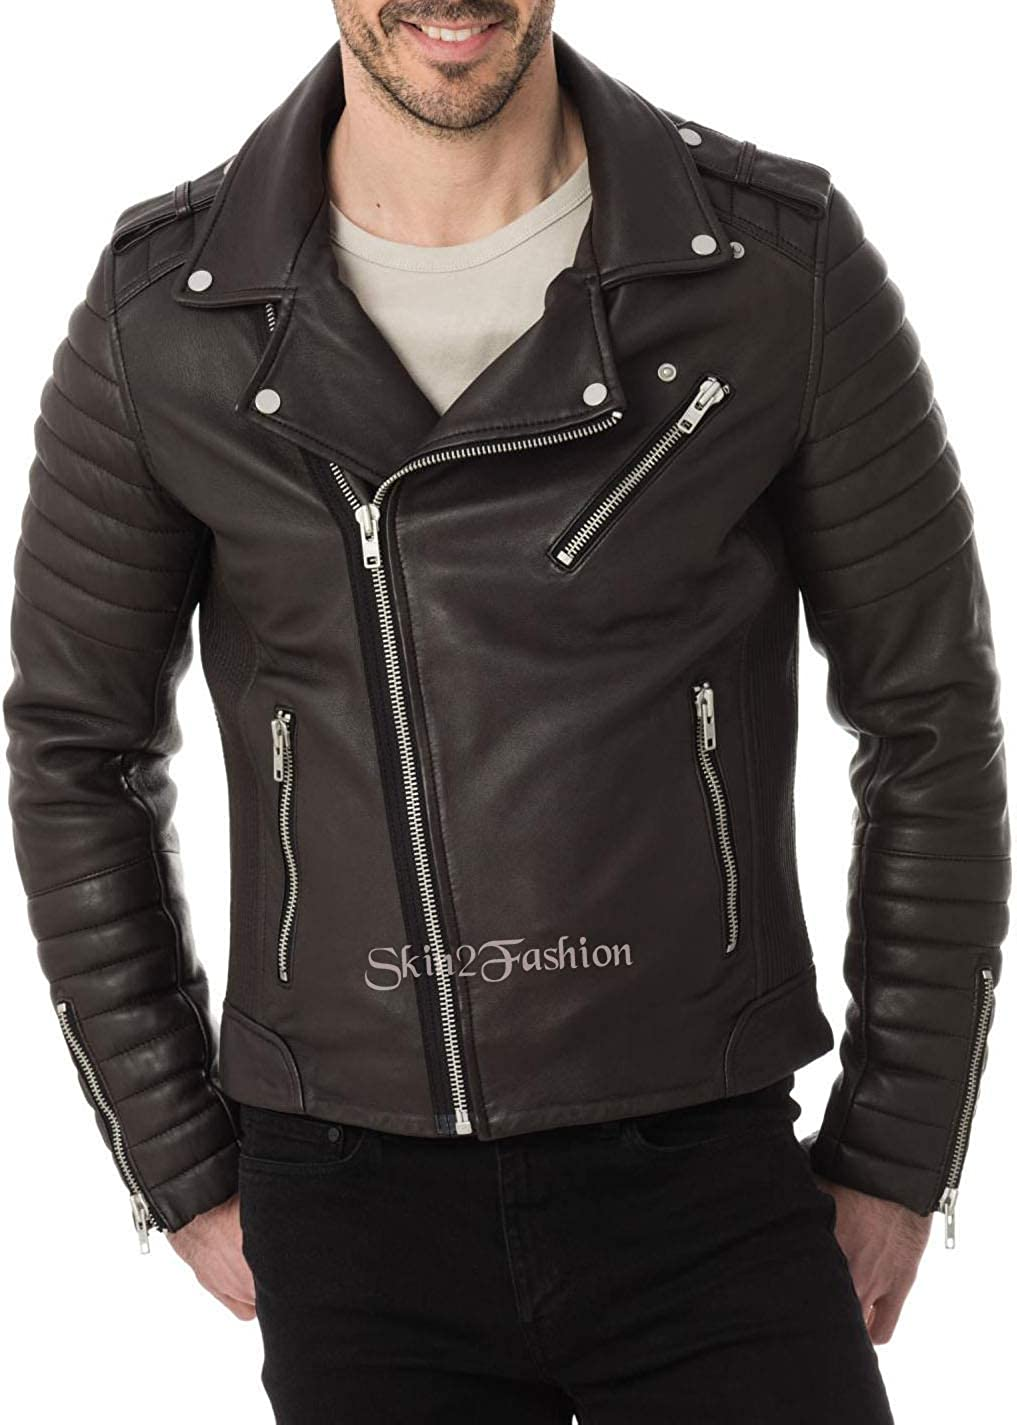 Skin2Fashion Mens Leather Jackets 230